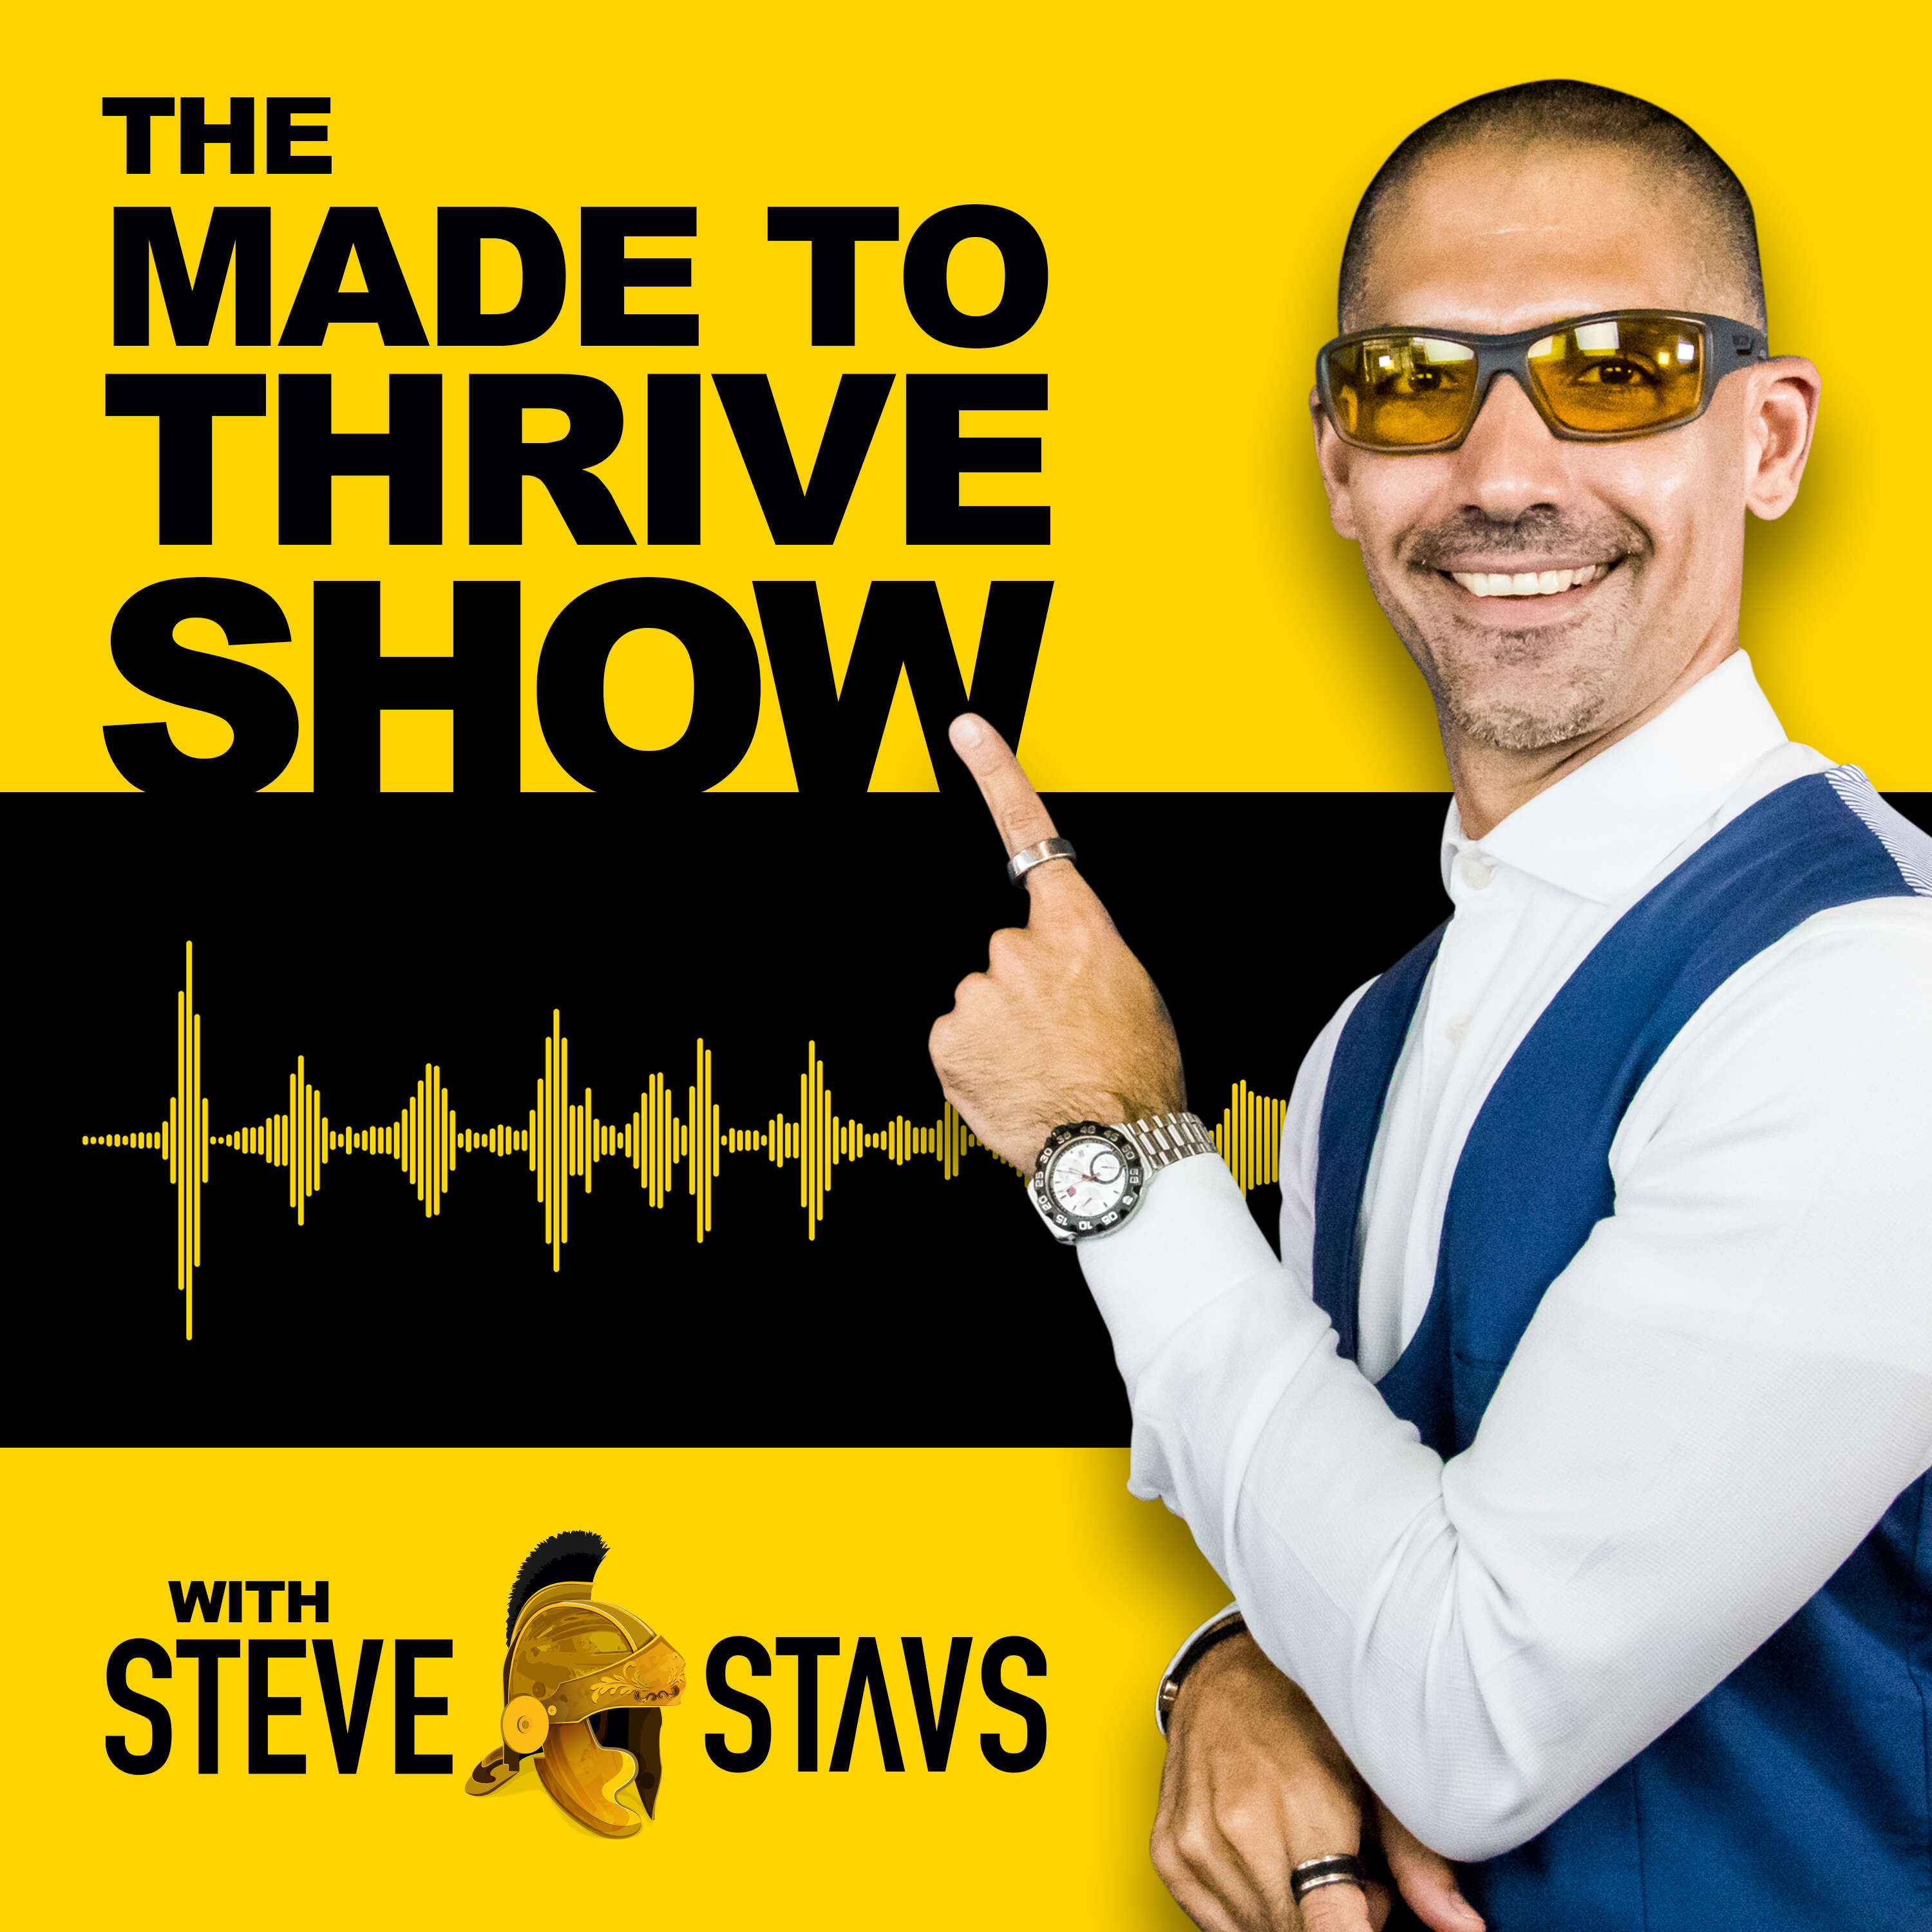 The Made to Thrive Show